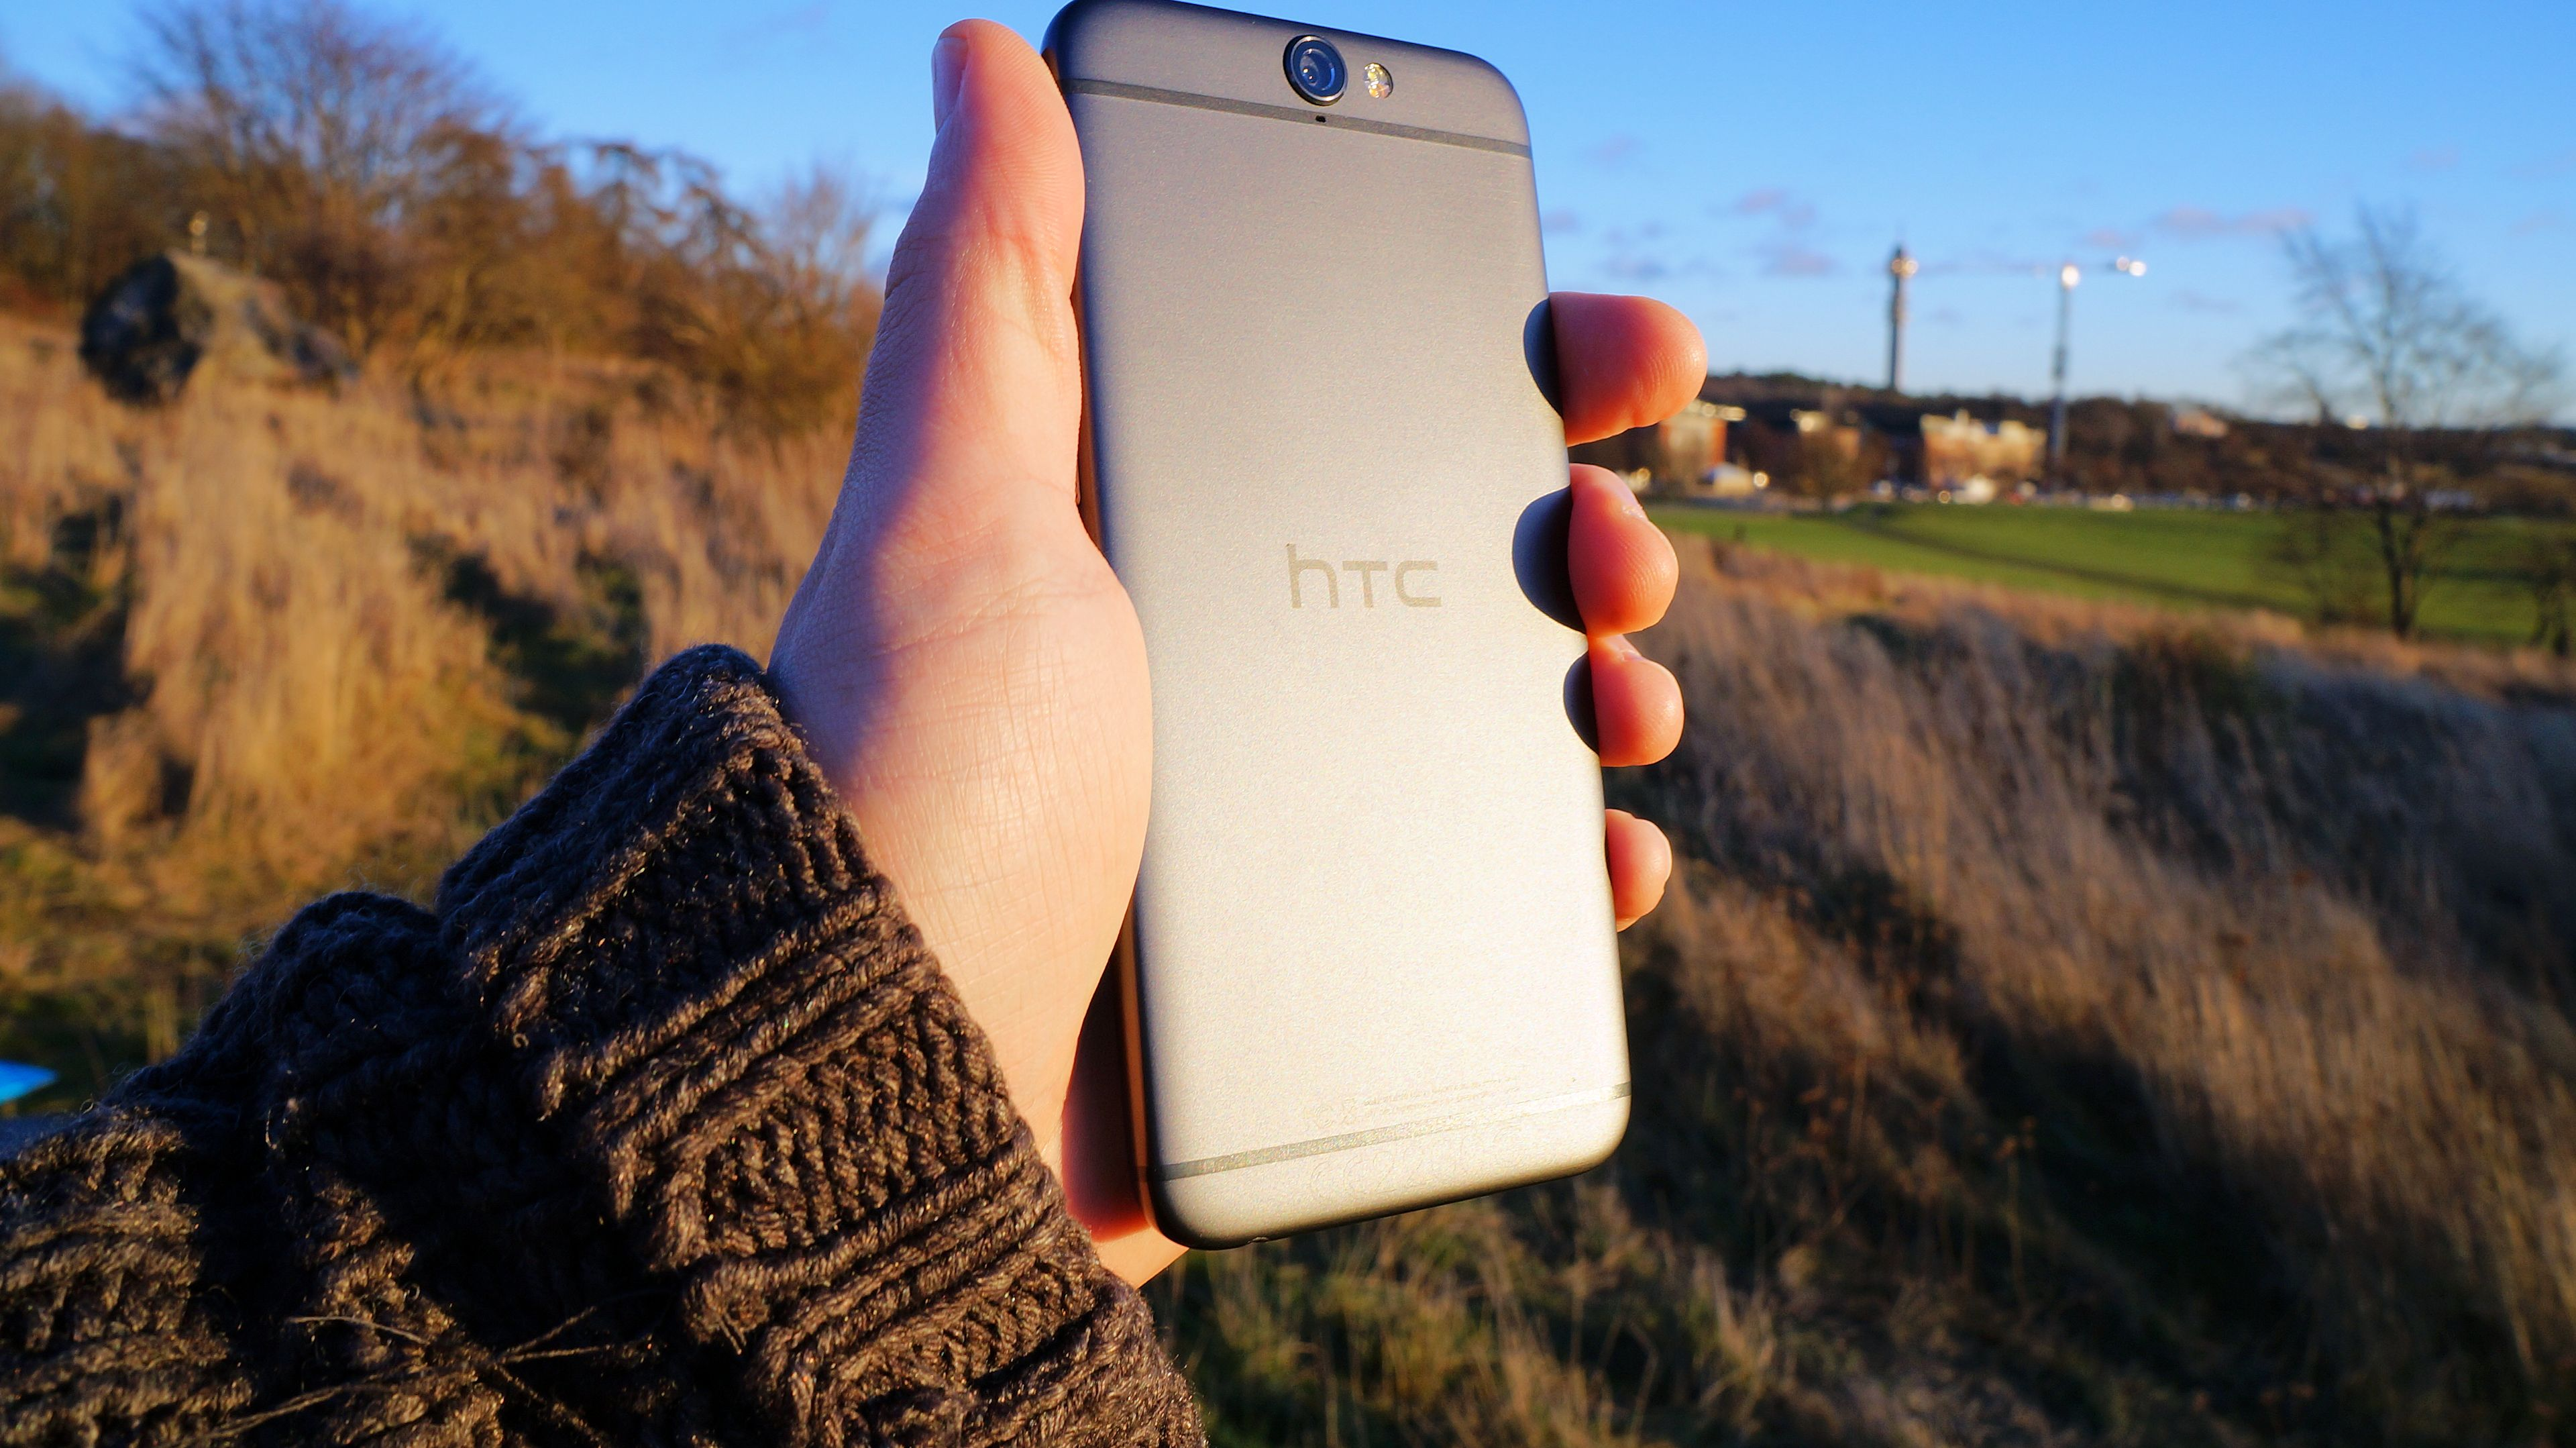 htc-one-a9-test-bild-1